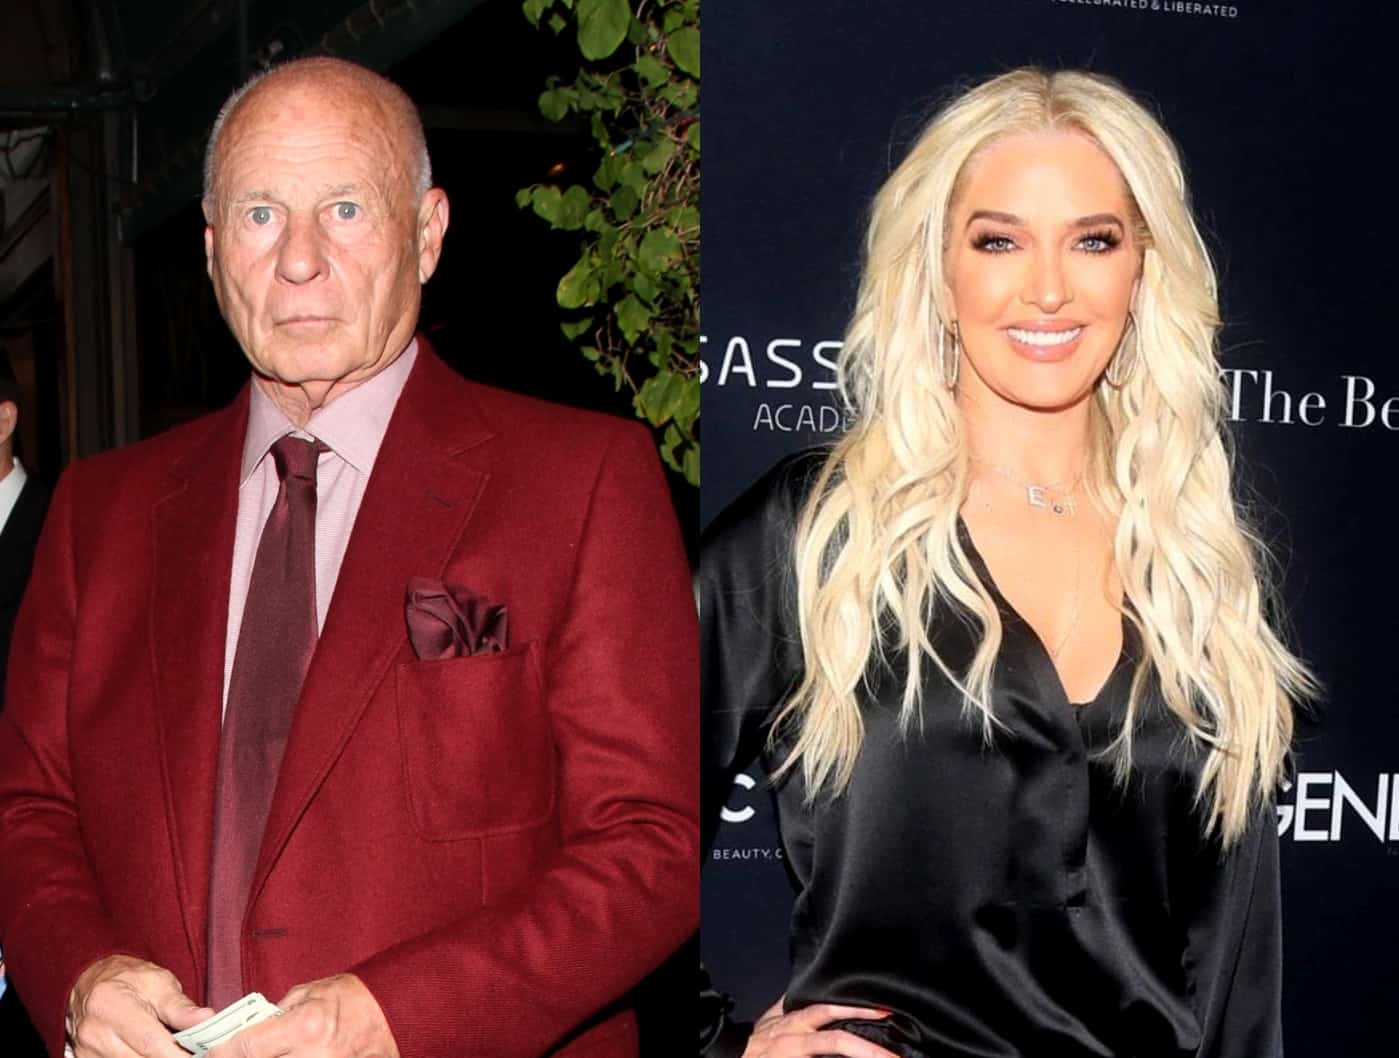 RHOBH's Thomas Girardi Forced Into Chapter 7 Liquidation as Bankruptcy Court Demands He Turn Over Assets, Plus Estranged Wife Erika Jayne is Dragged Into Another Lawsuit Against Him